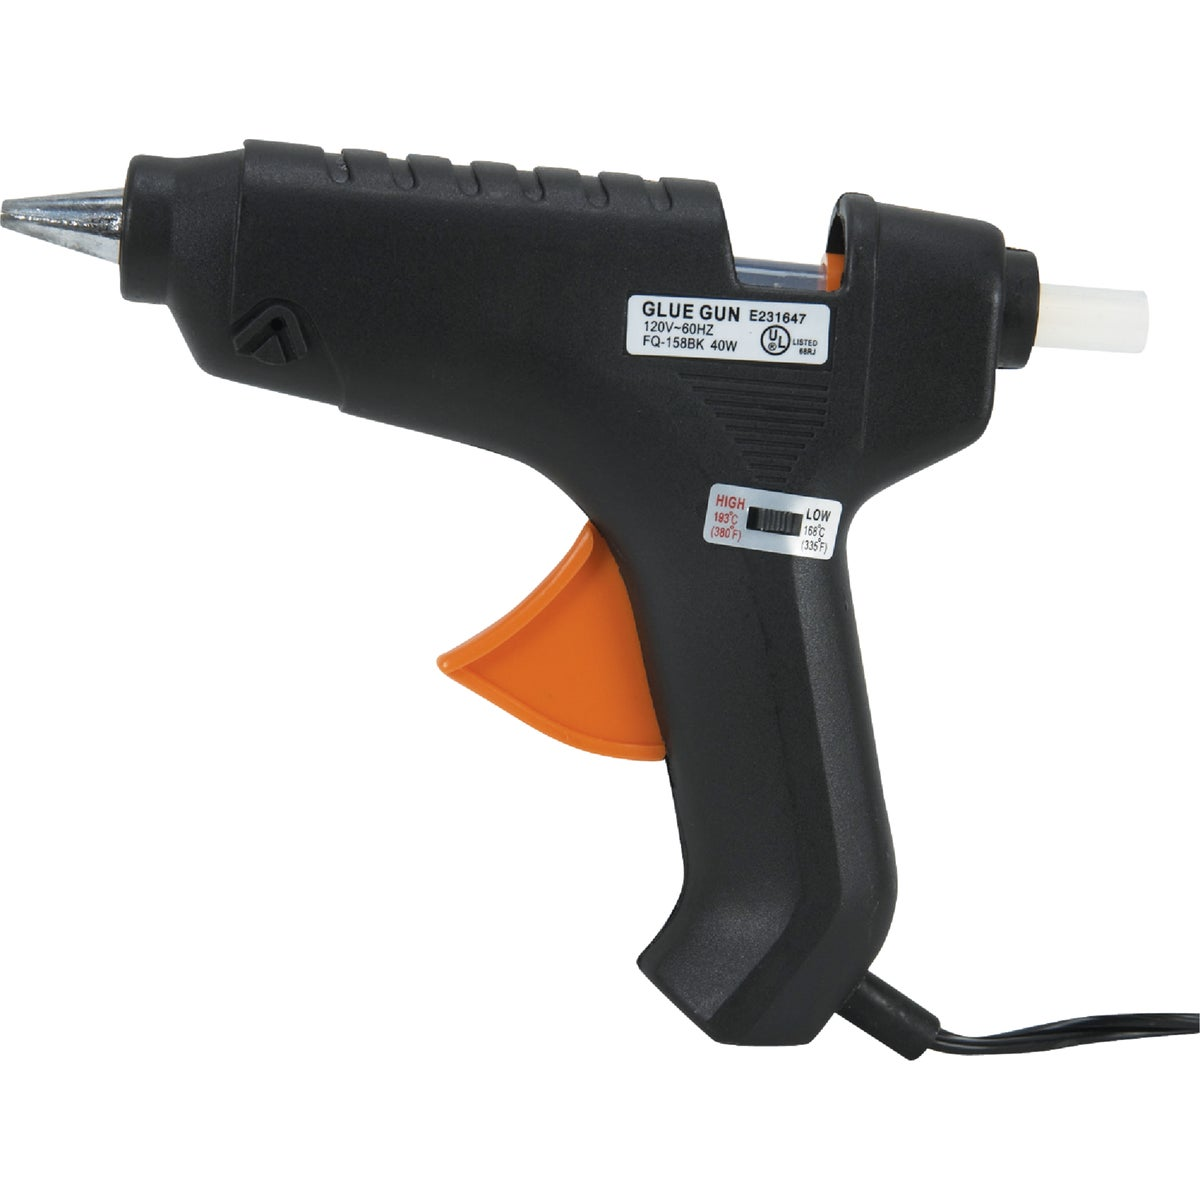 DUAL-TEMP GLUE GUN - 371351 by Do it Best